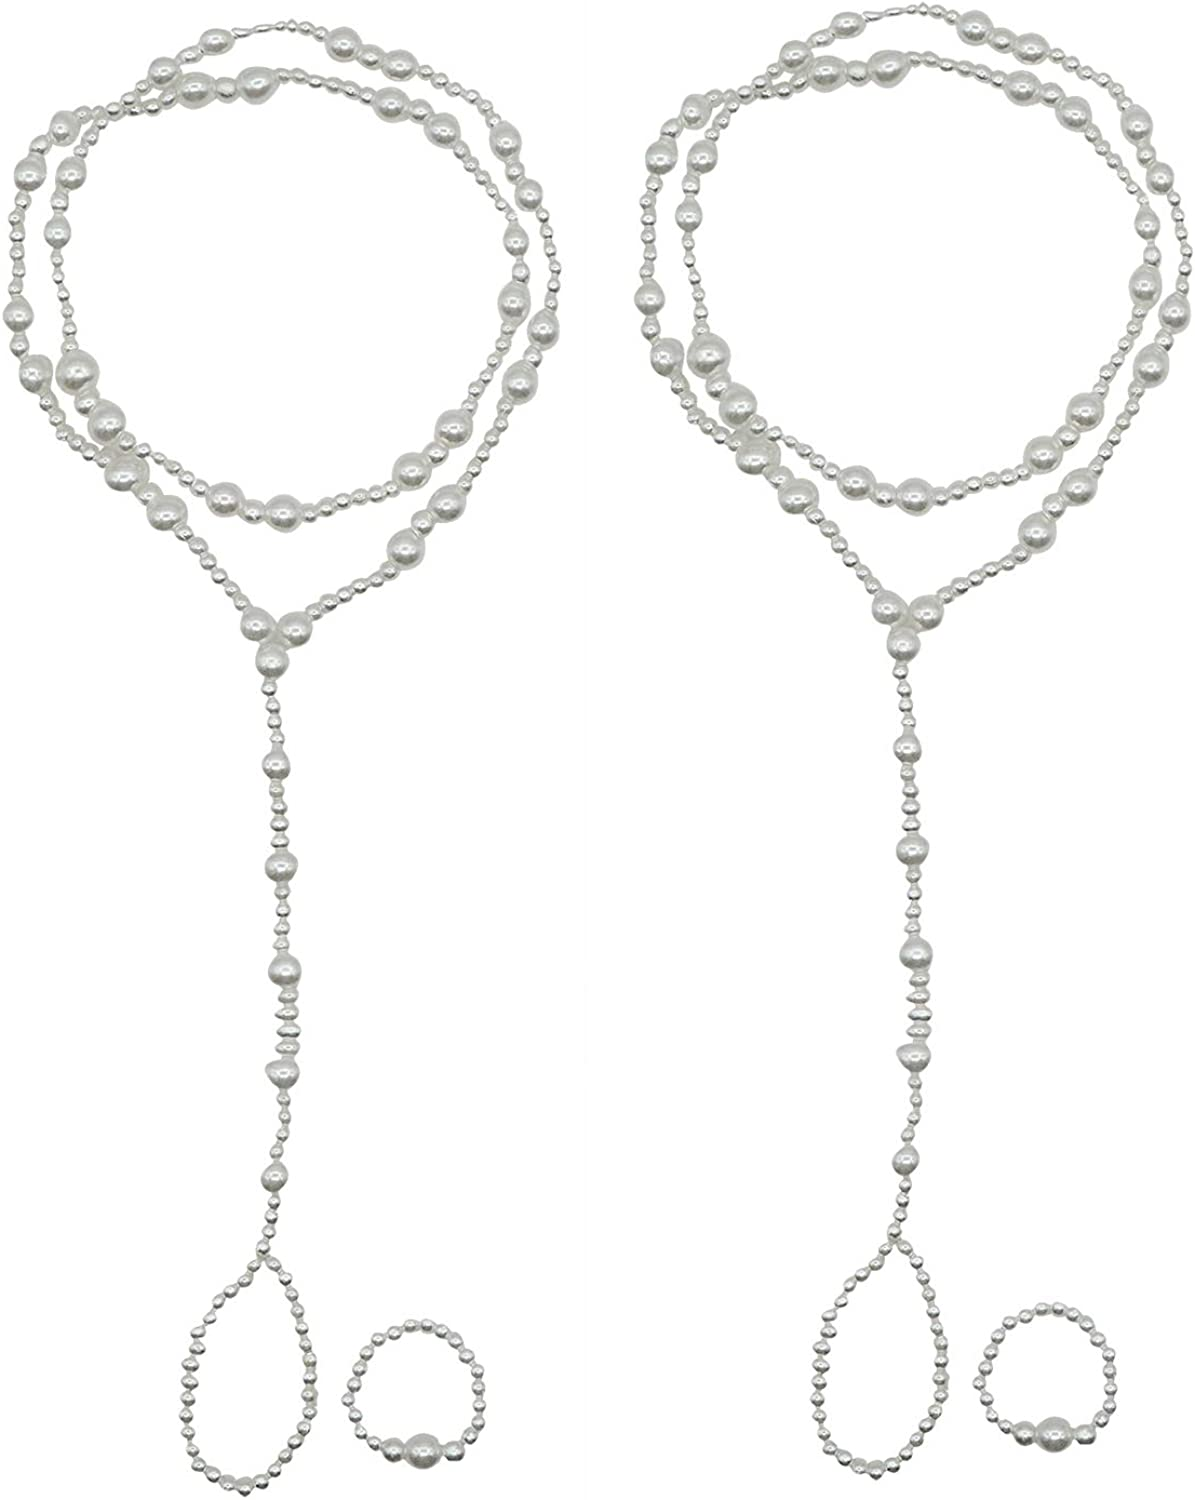 Bellady 2 Pcs Womens Beach Imitation Pearl Barefoot Sandal Foot Jewelry Anklet Chain